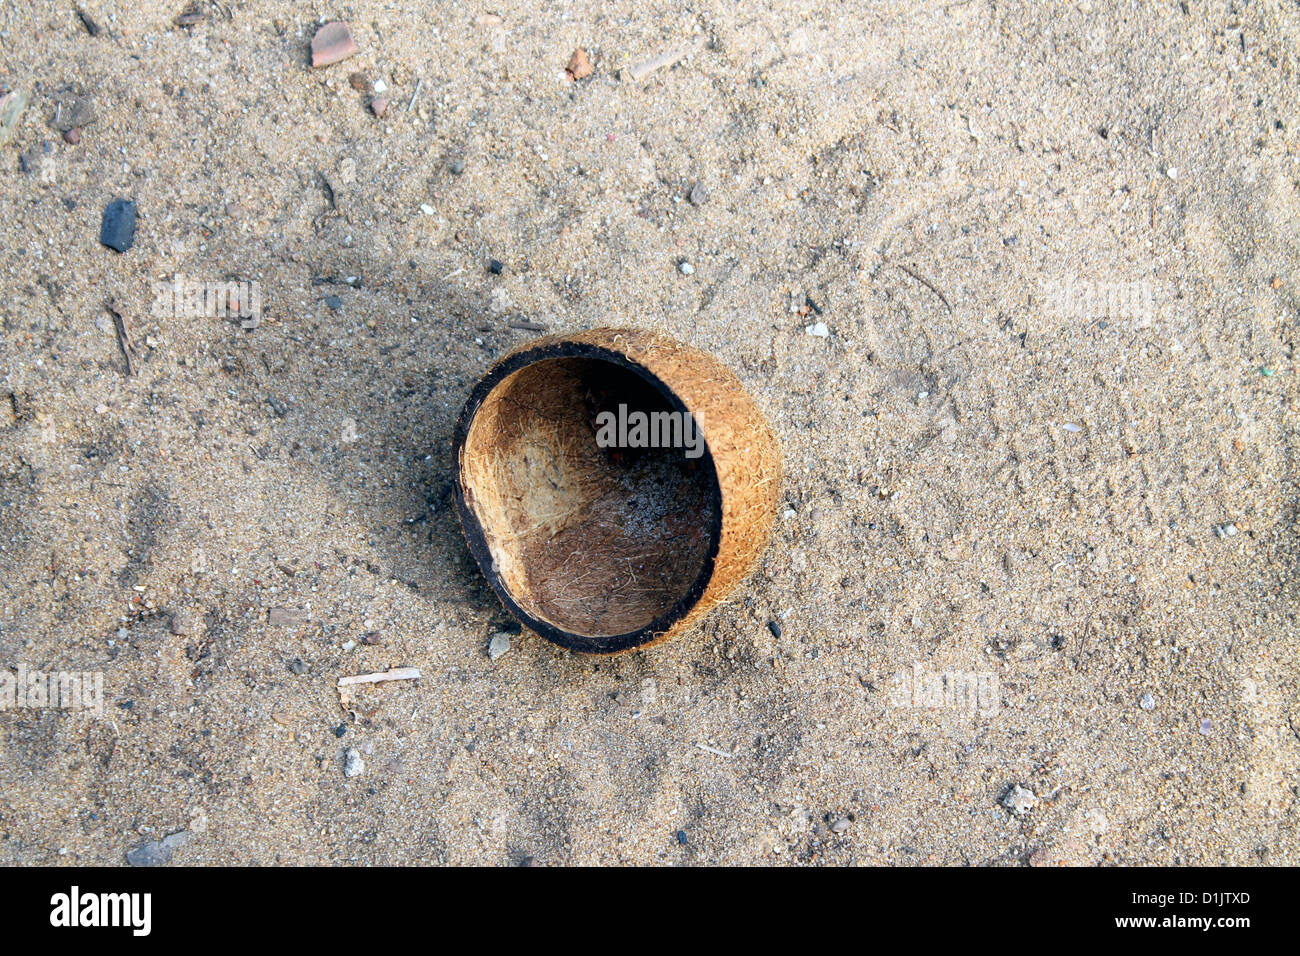 A coconut shell thrown away from the kitchen - Stock Image